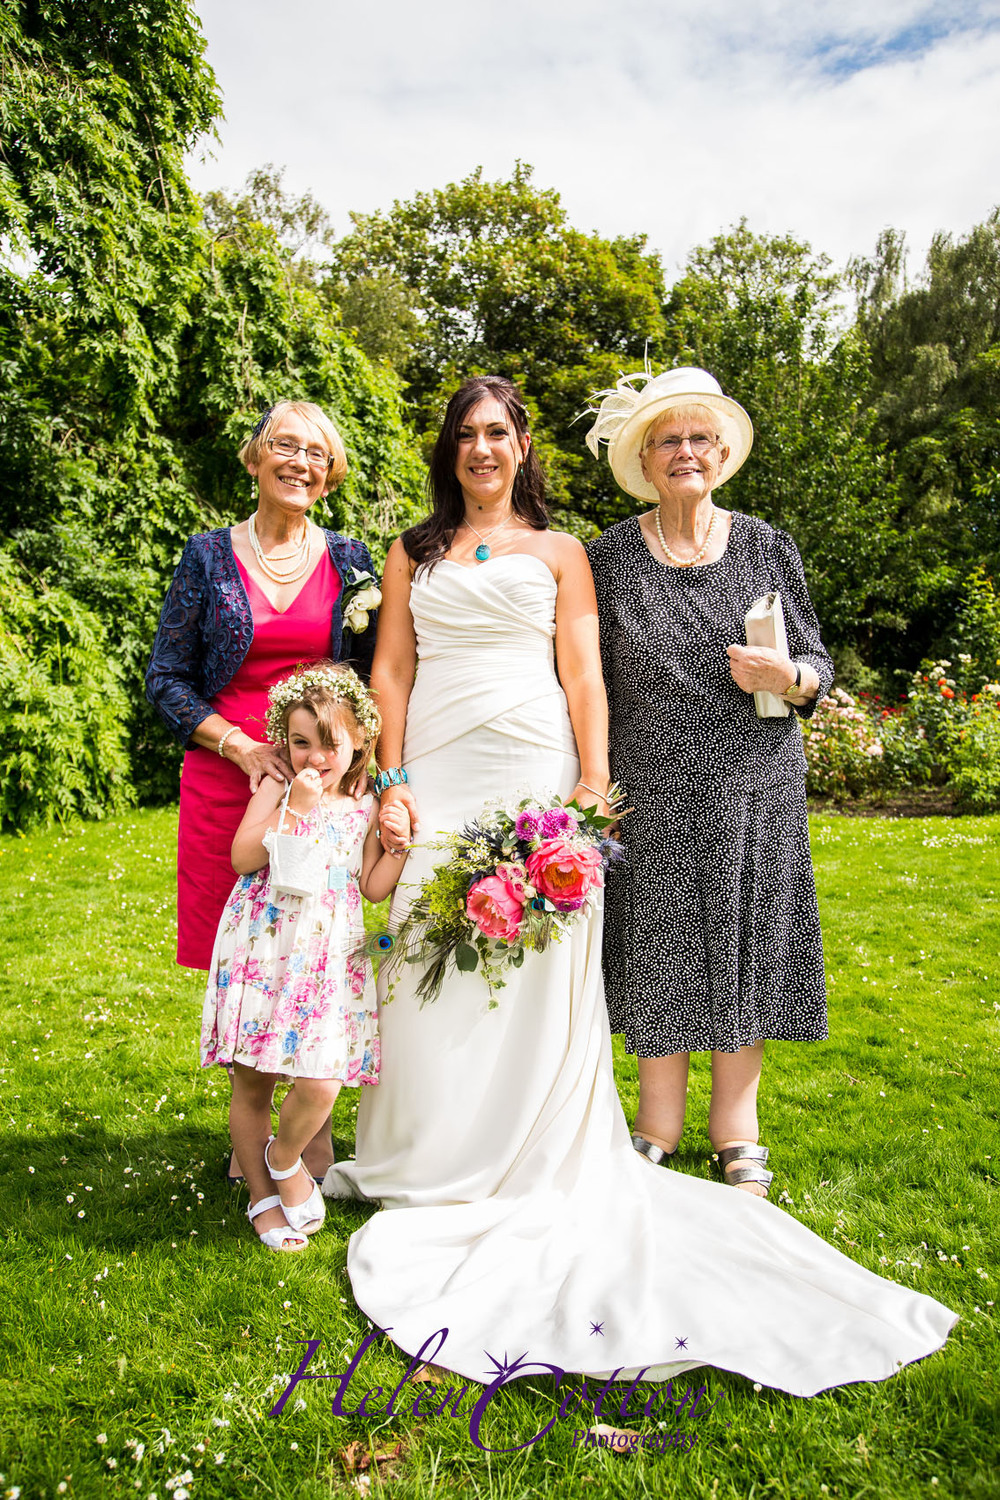 Sarah & Ian's Wedding_Helen Cotton Photography©554.jpg